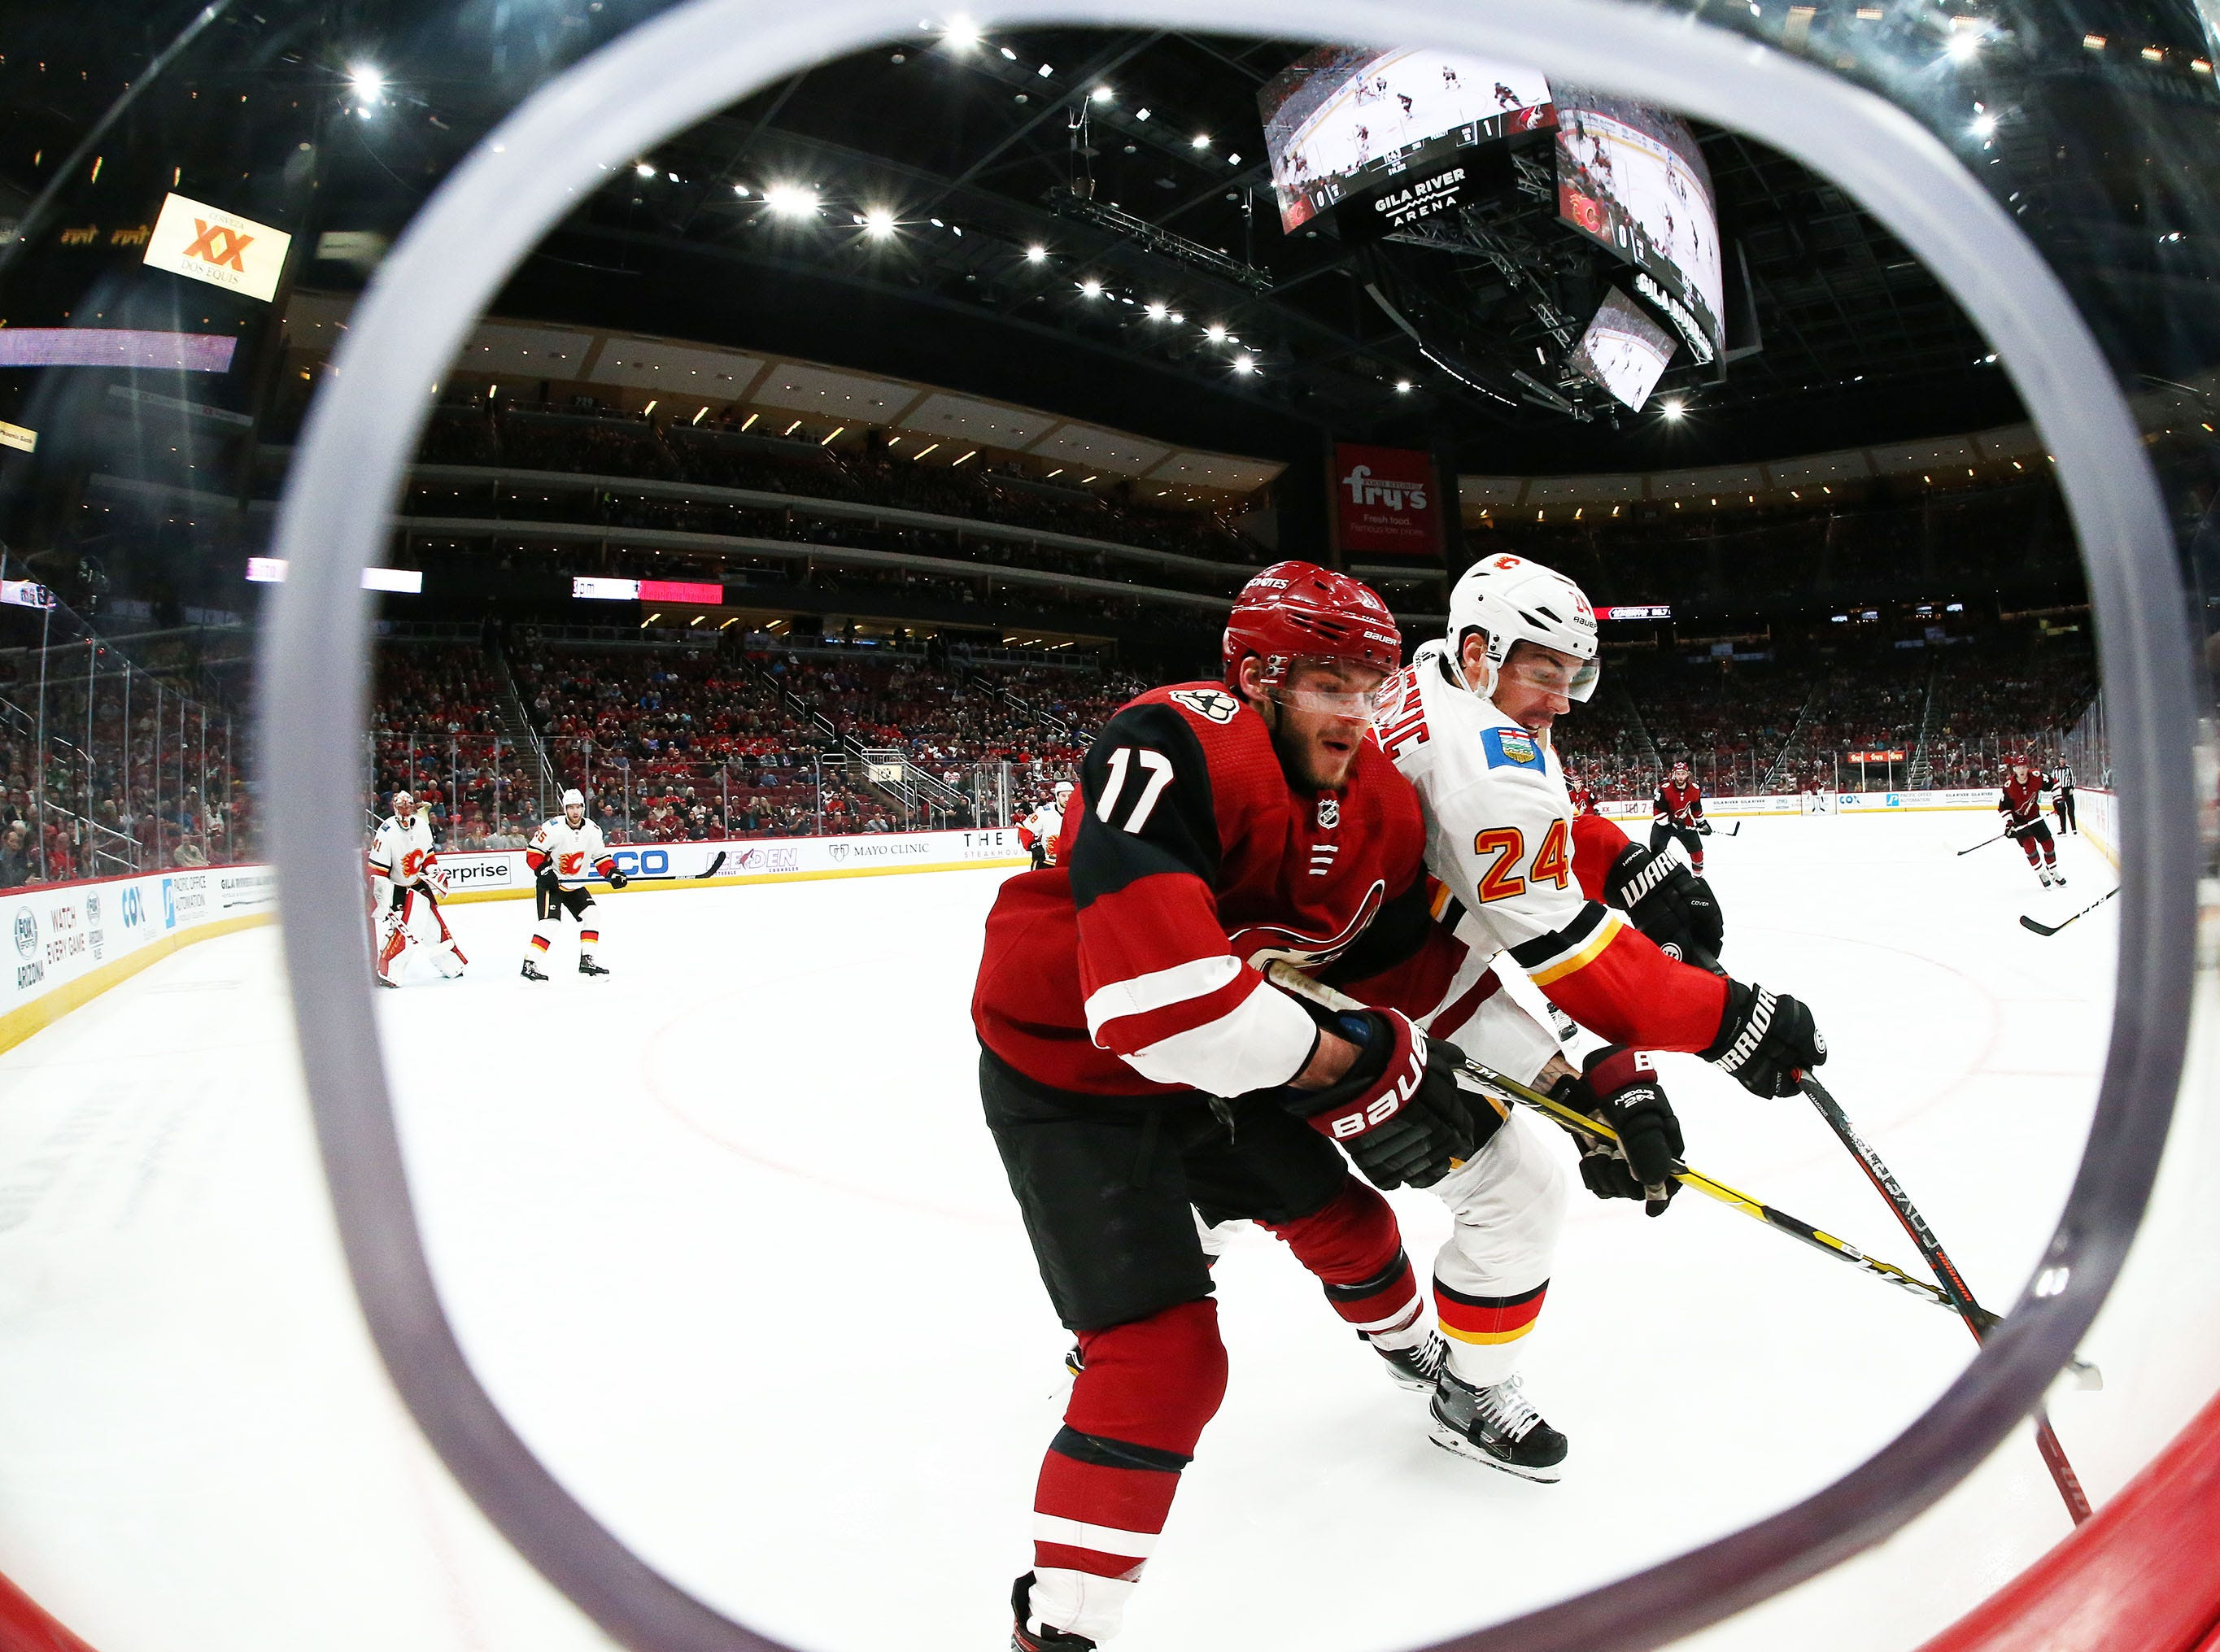 Arizona Coyotes center Alex Galchenyuk (17) and Calgary Flames defenseman Travis Hamonic (24) chase the puck in the second period on Mar. 7, 2019, at Gila River Arena in Glendale, Ariz.